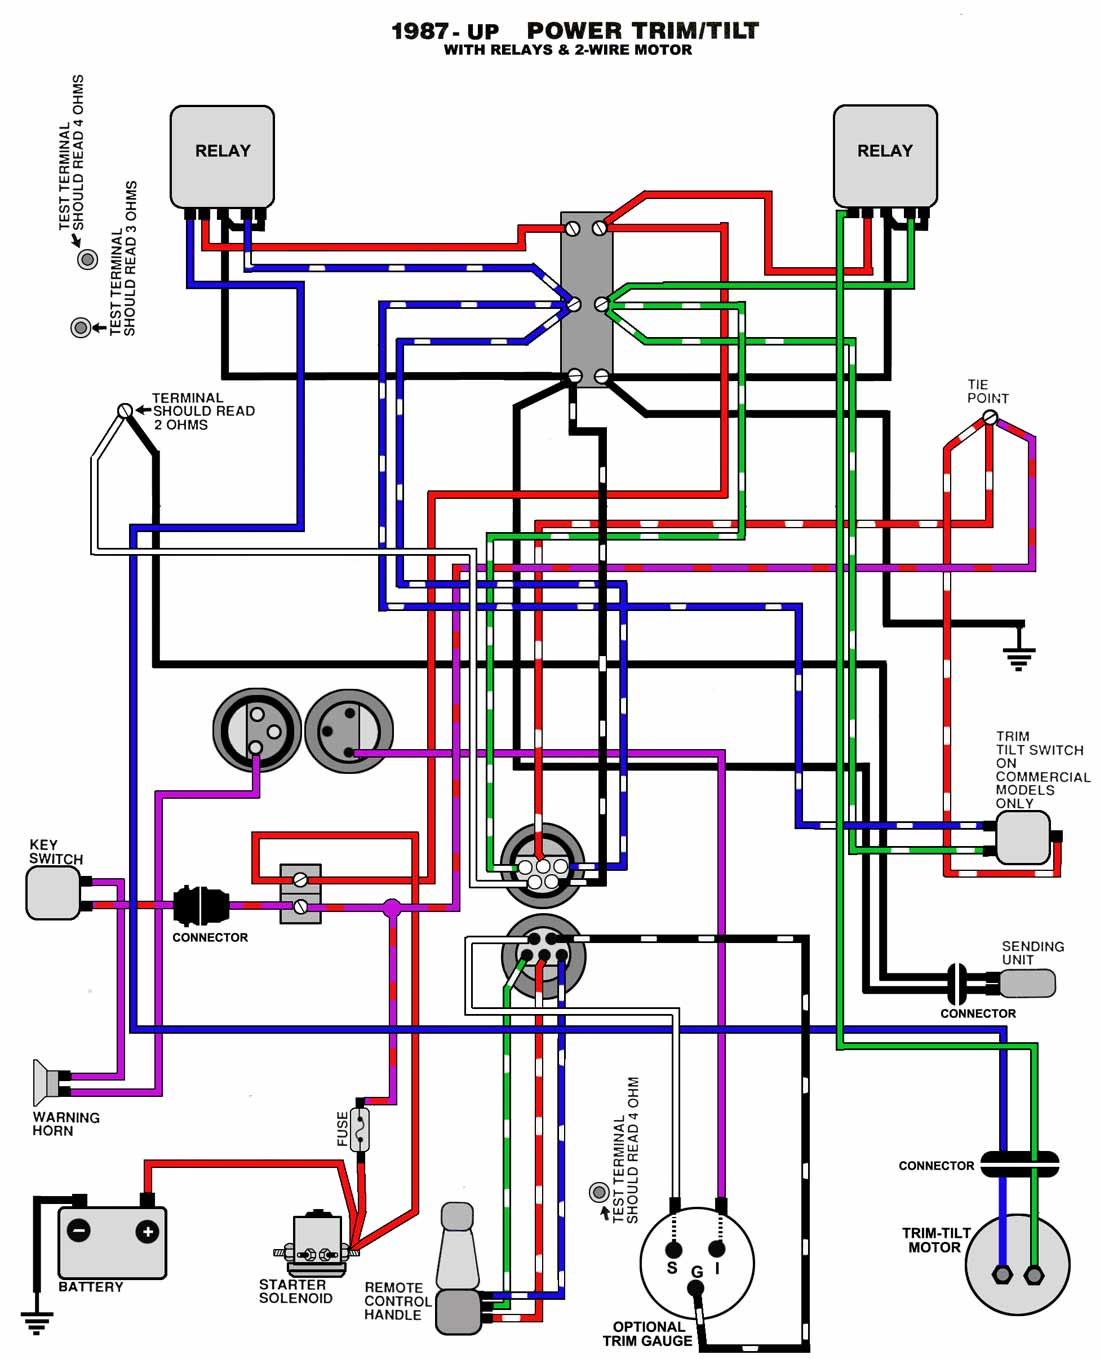 TnT_87_UP?resize=665%2C822 yamaha tach wiring diagram the wiring diagram readingrat net yamaha outboard gauge wiring diagram at n-0.co